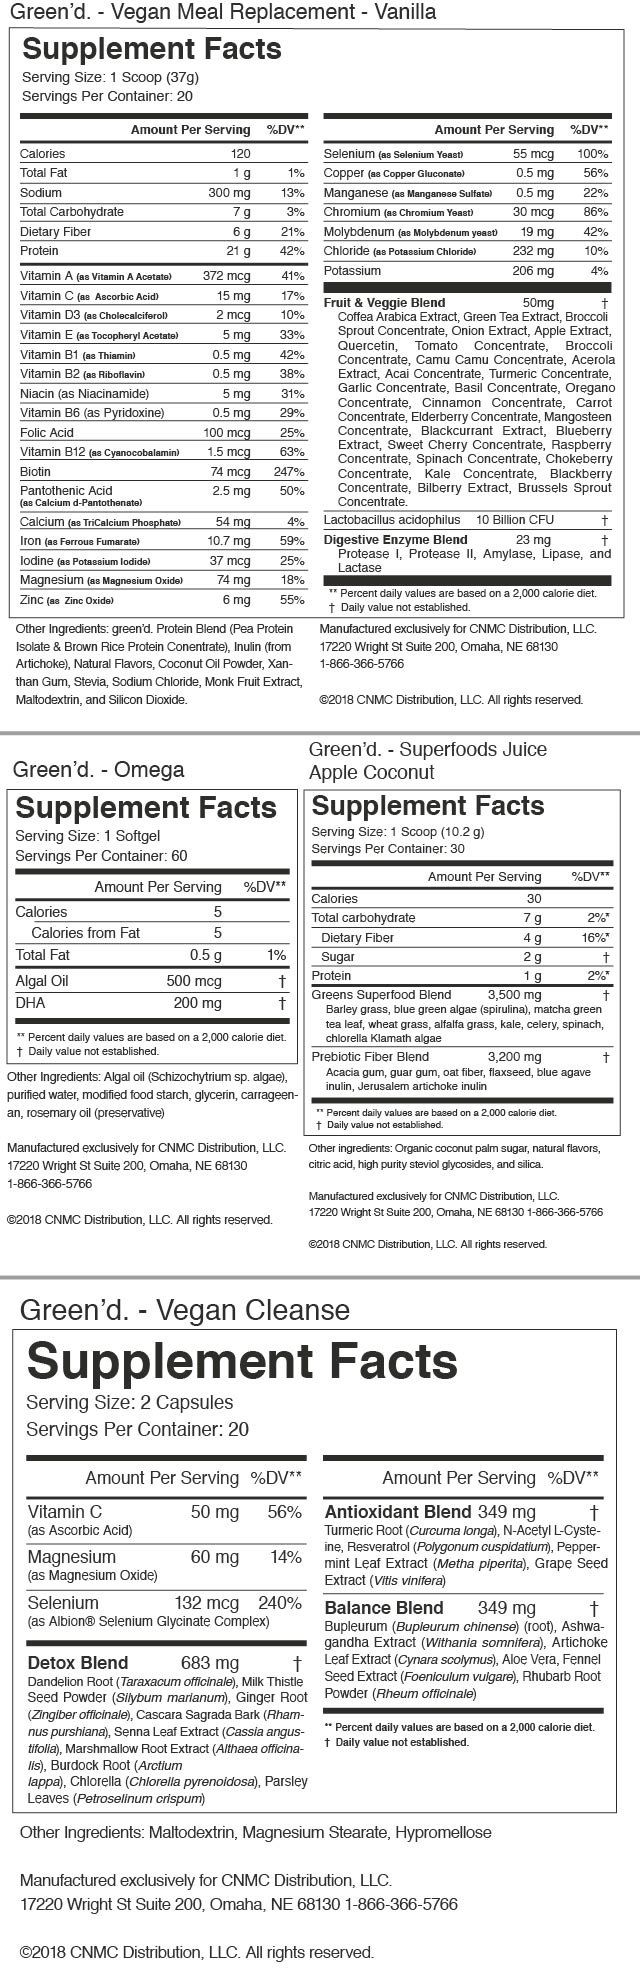 green'd. Plant Based Weight Loss System -Nutrition Facts